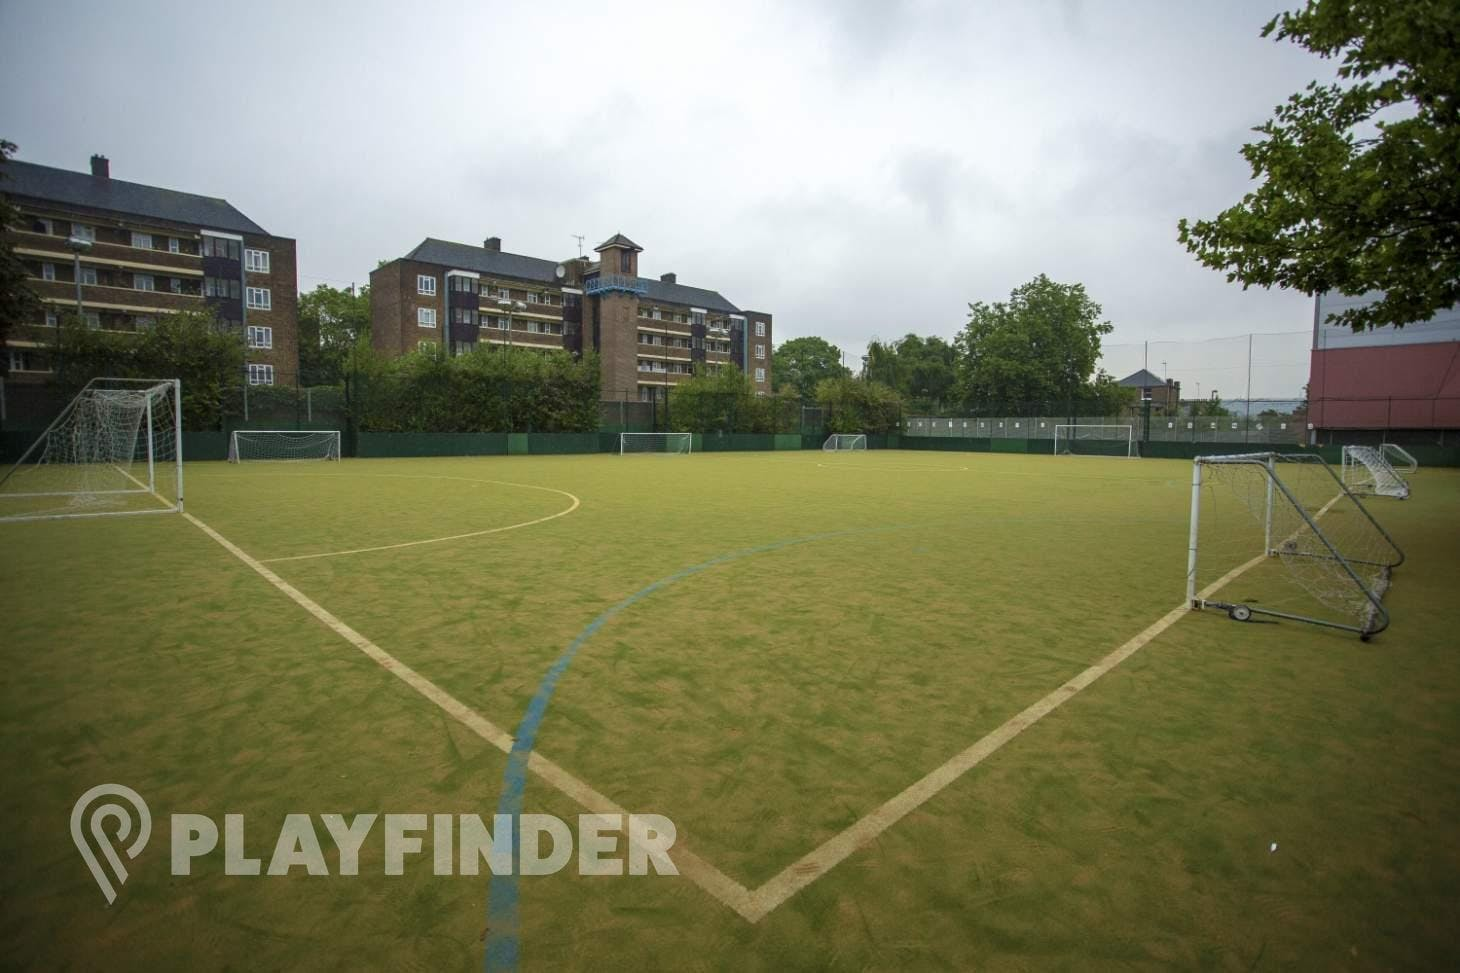 PlayFootball Holloway 7 a side | Astroturf football pitch